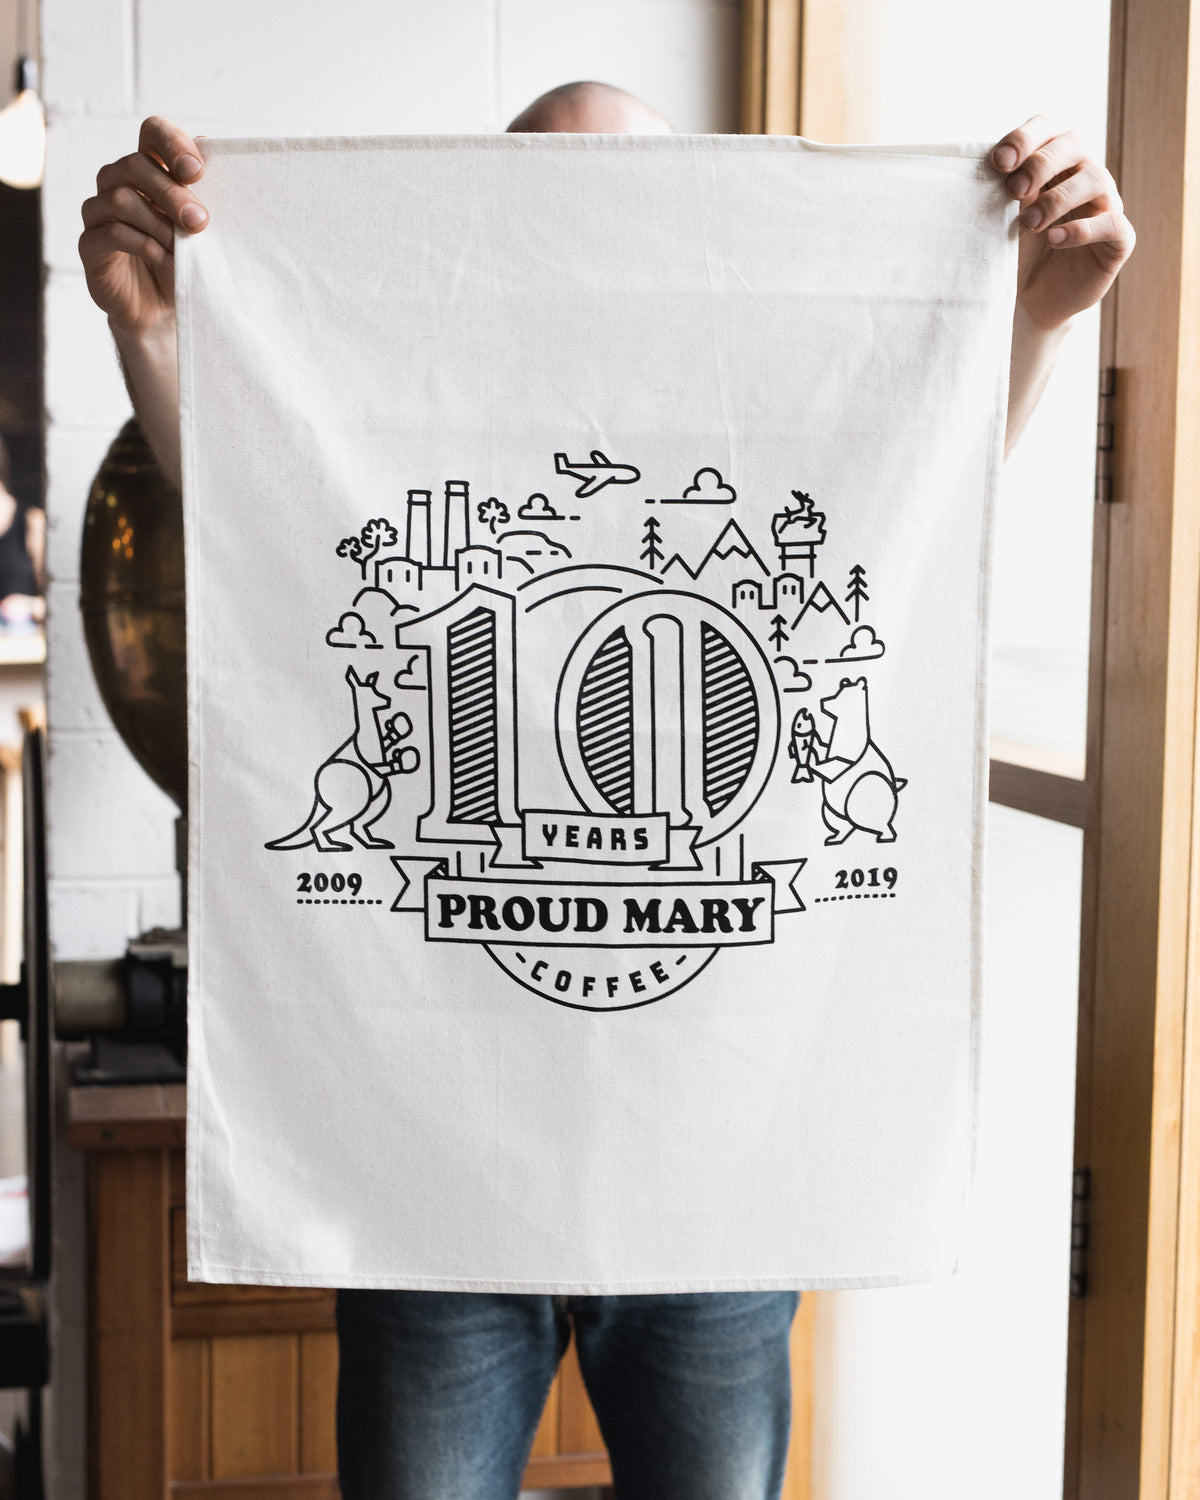 10 Year Anniversary Tea Towel - Proud Mary Coffee Melbourne